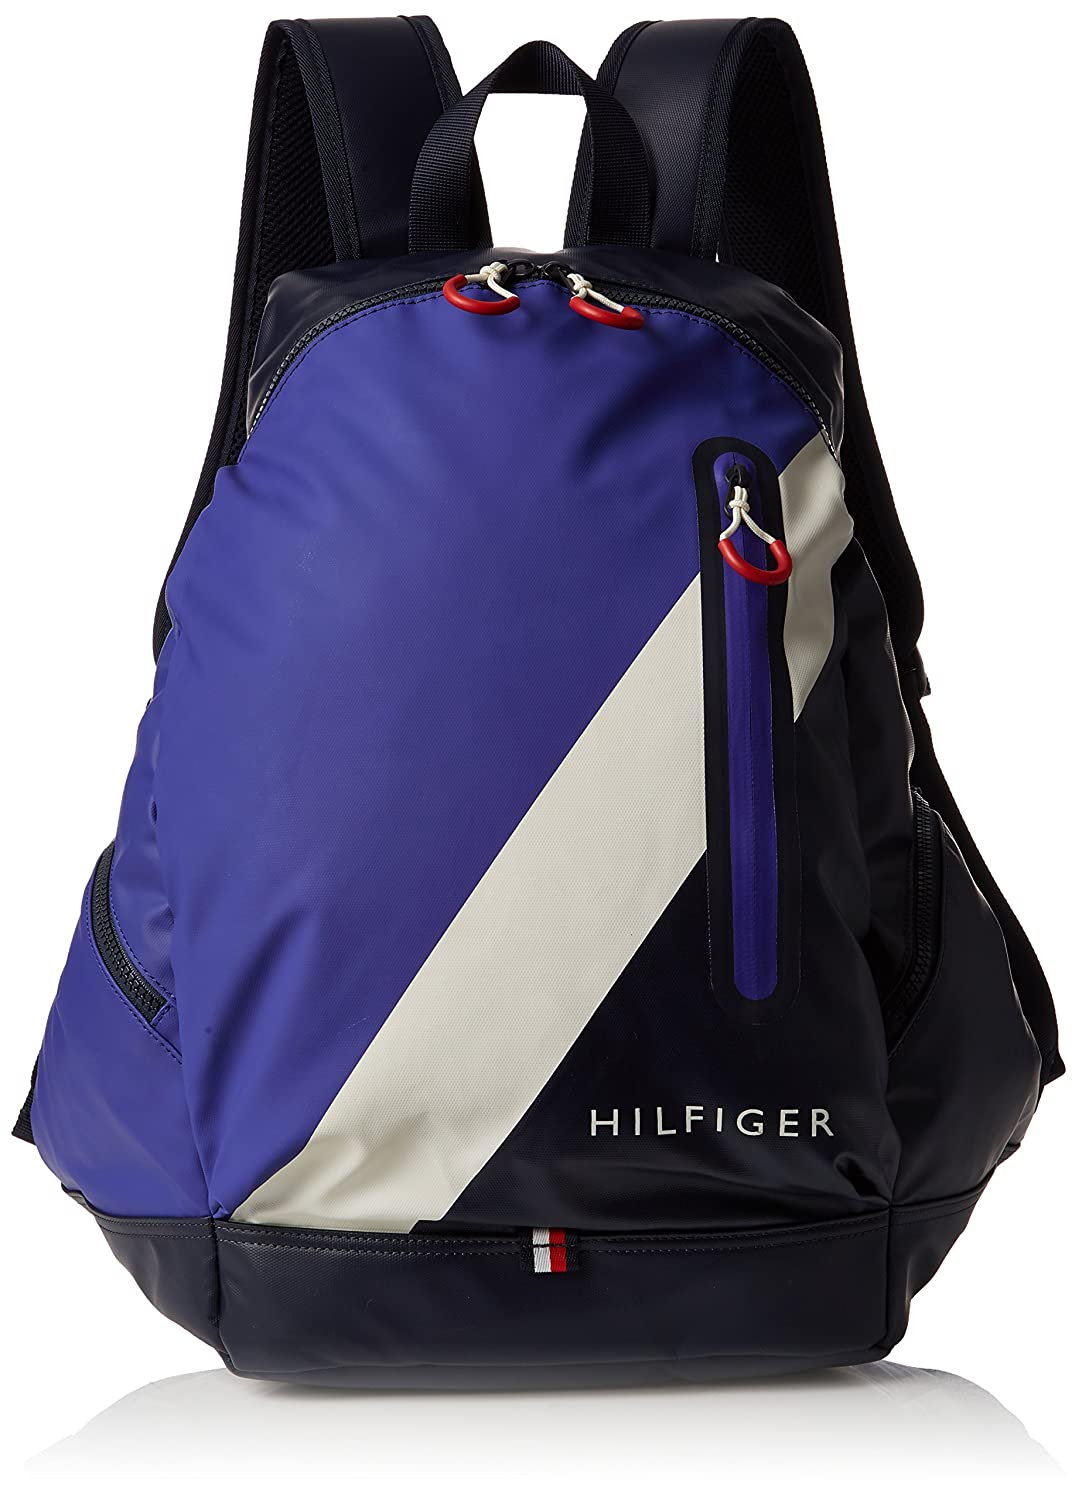 Tommy Hilfiger - Block Story Backpack, Mochilas Hombre, Azul (Tommy Navy), 18x45x38 cm (B x H T): Amazon.es: Zapatos y complementos